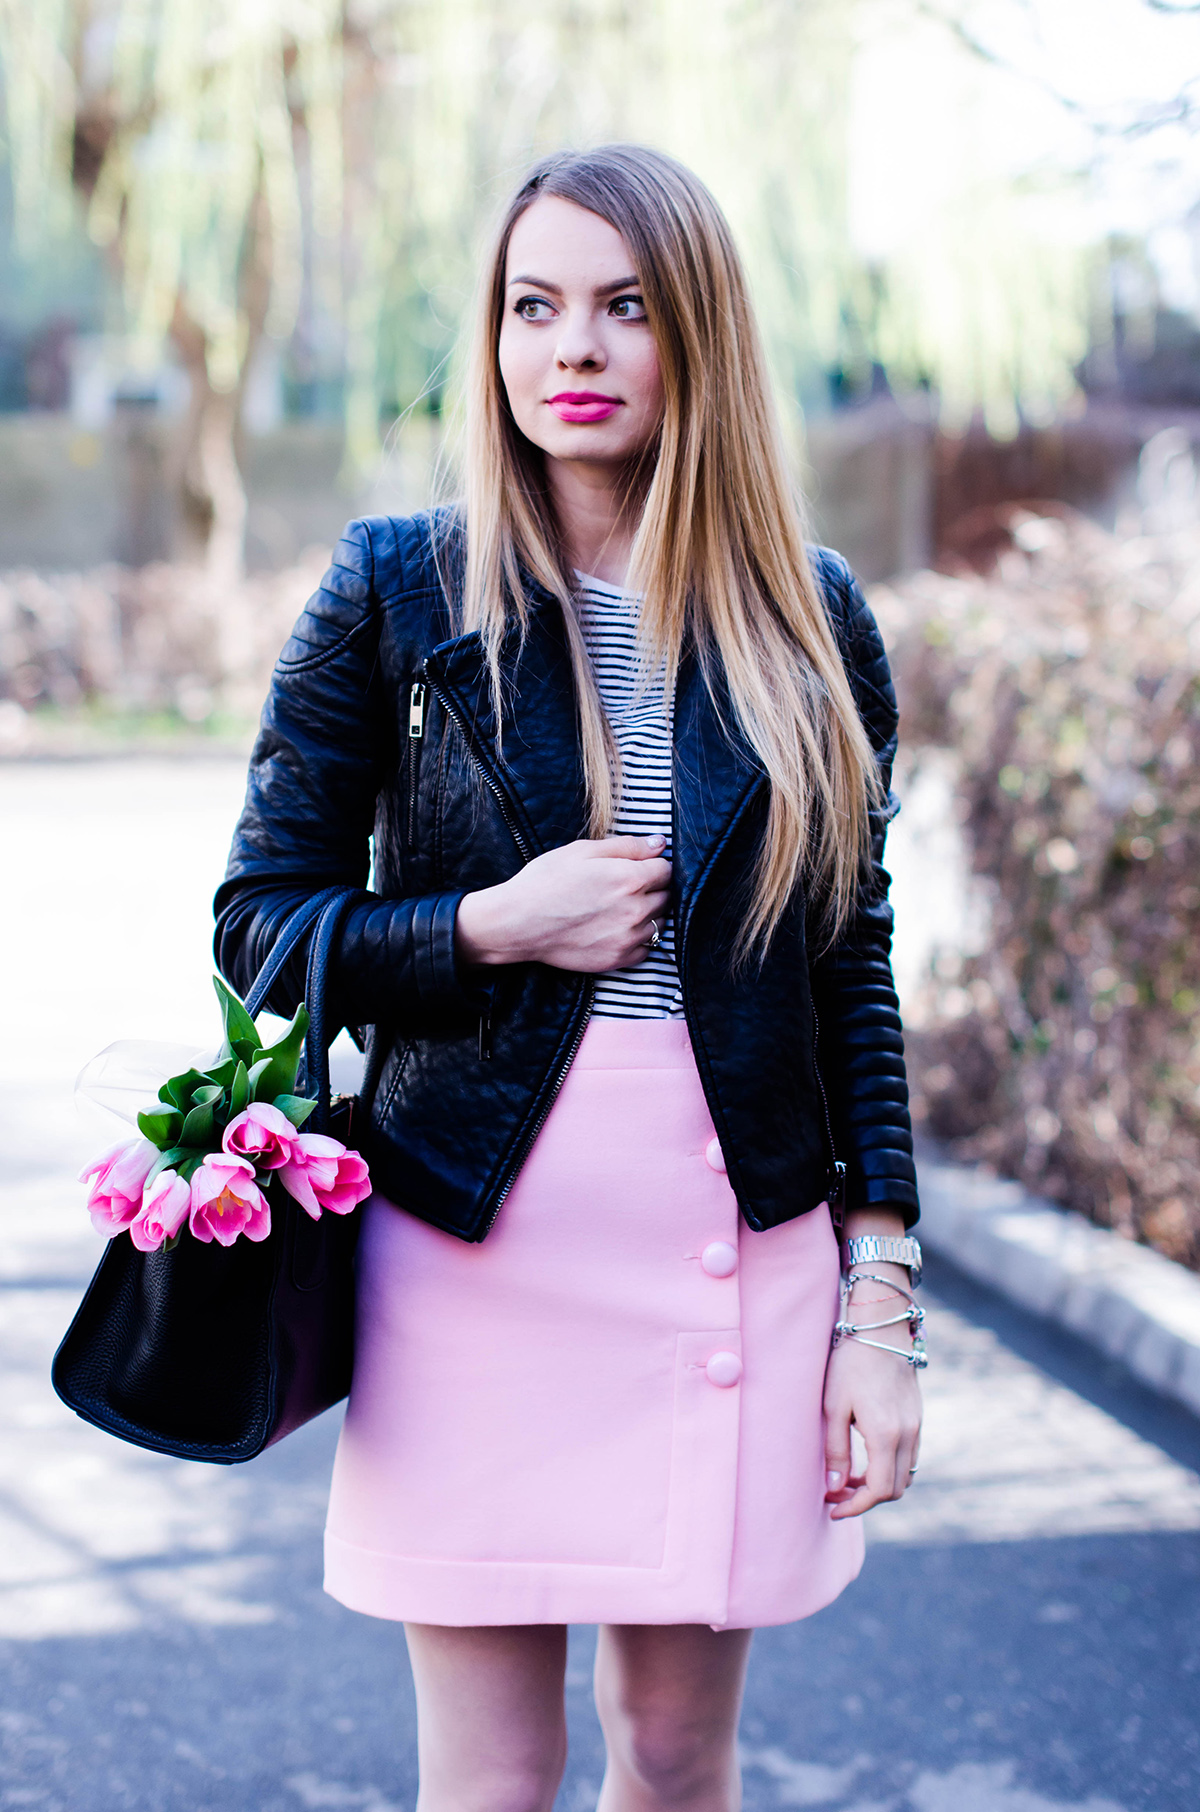 pink-a-line-skirt-adidas-stan-smith-leather-jacket-spring-outfit-pink-tulips (6)